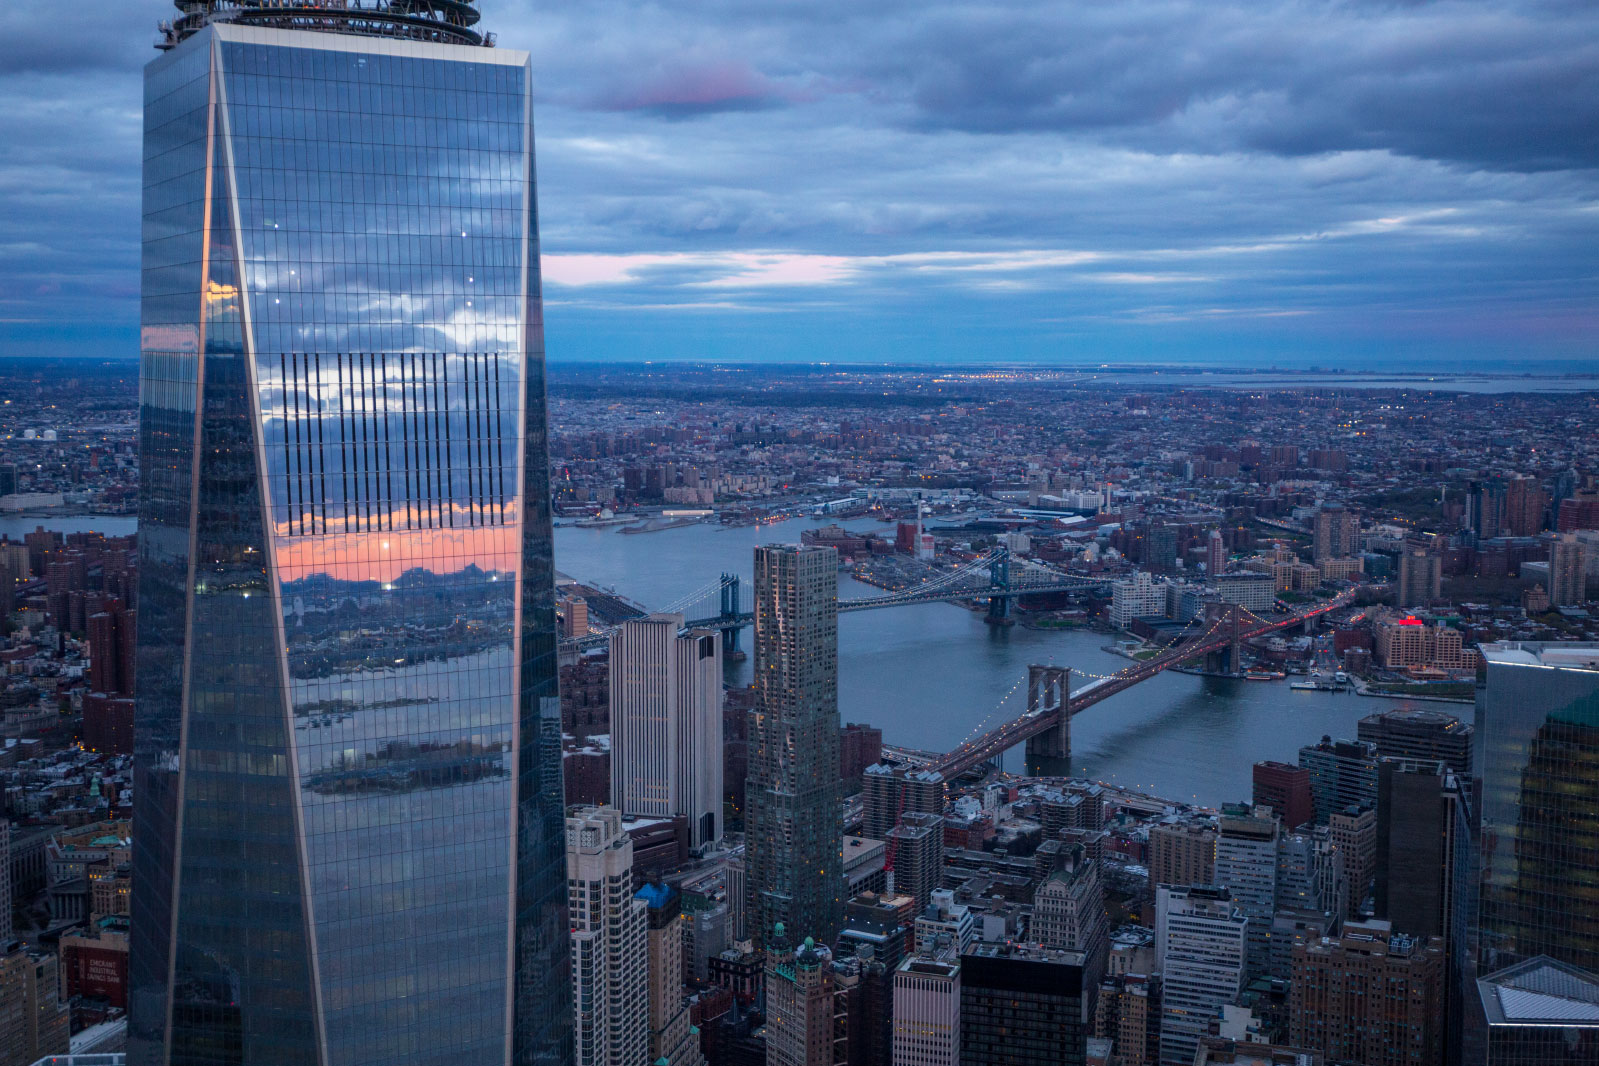 Evening view of One World Trade Center in New York City on a spring evening.